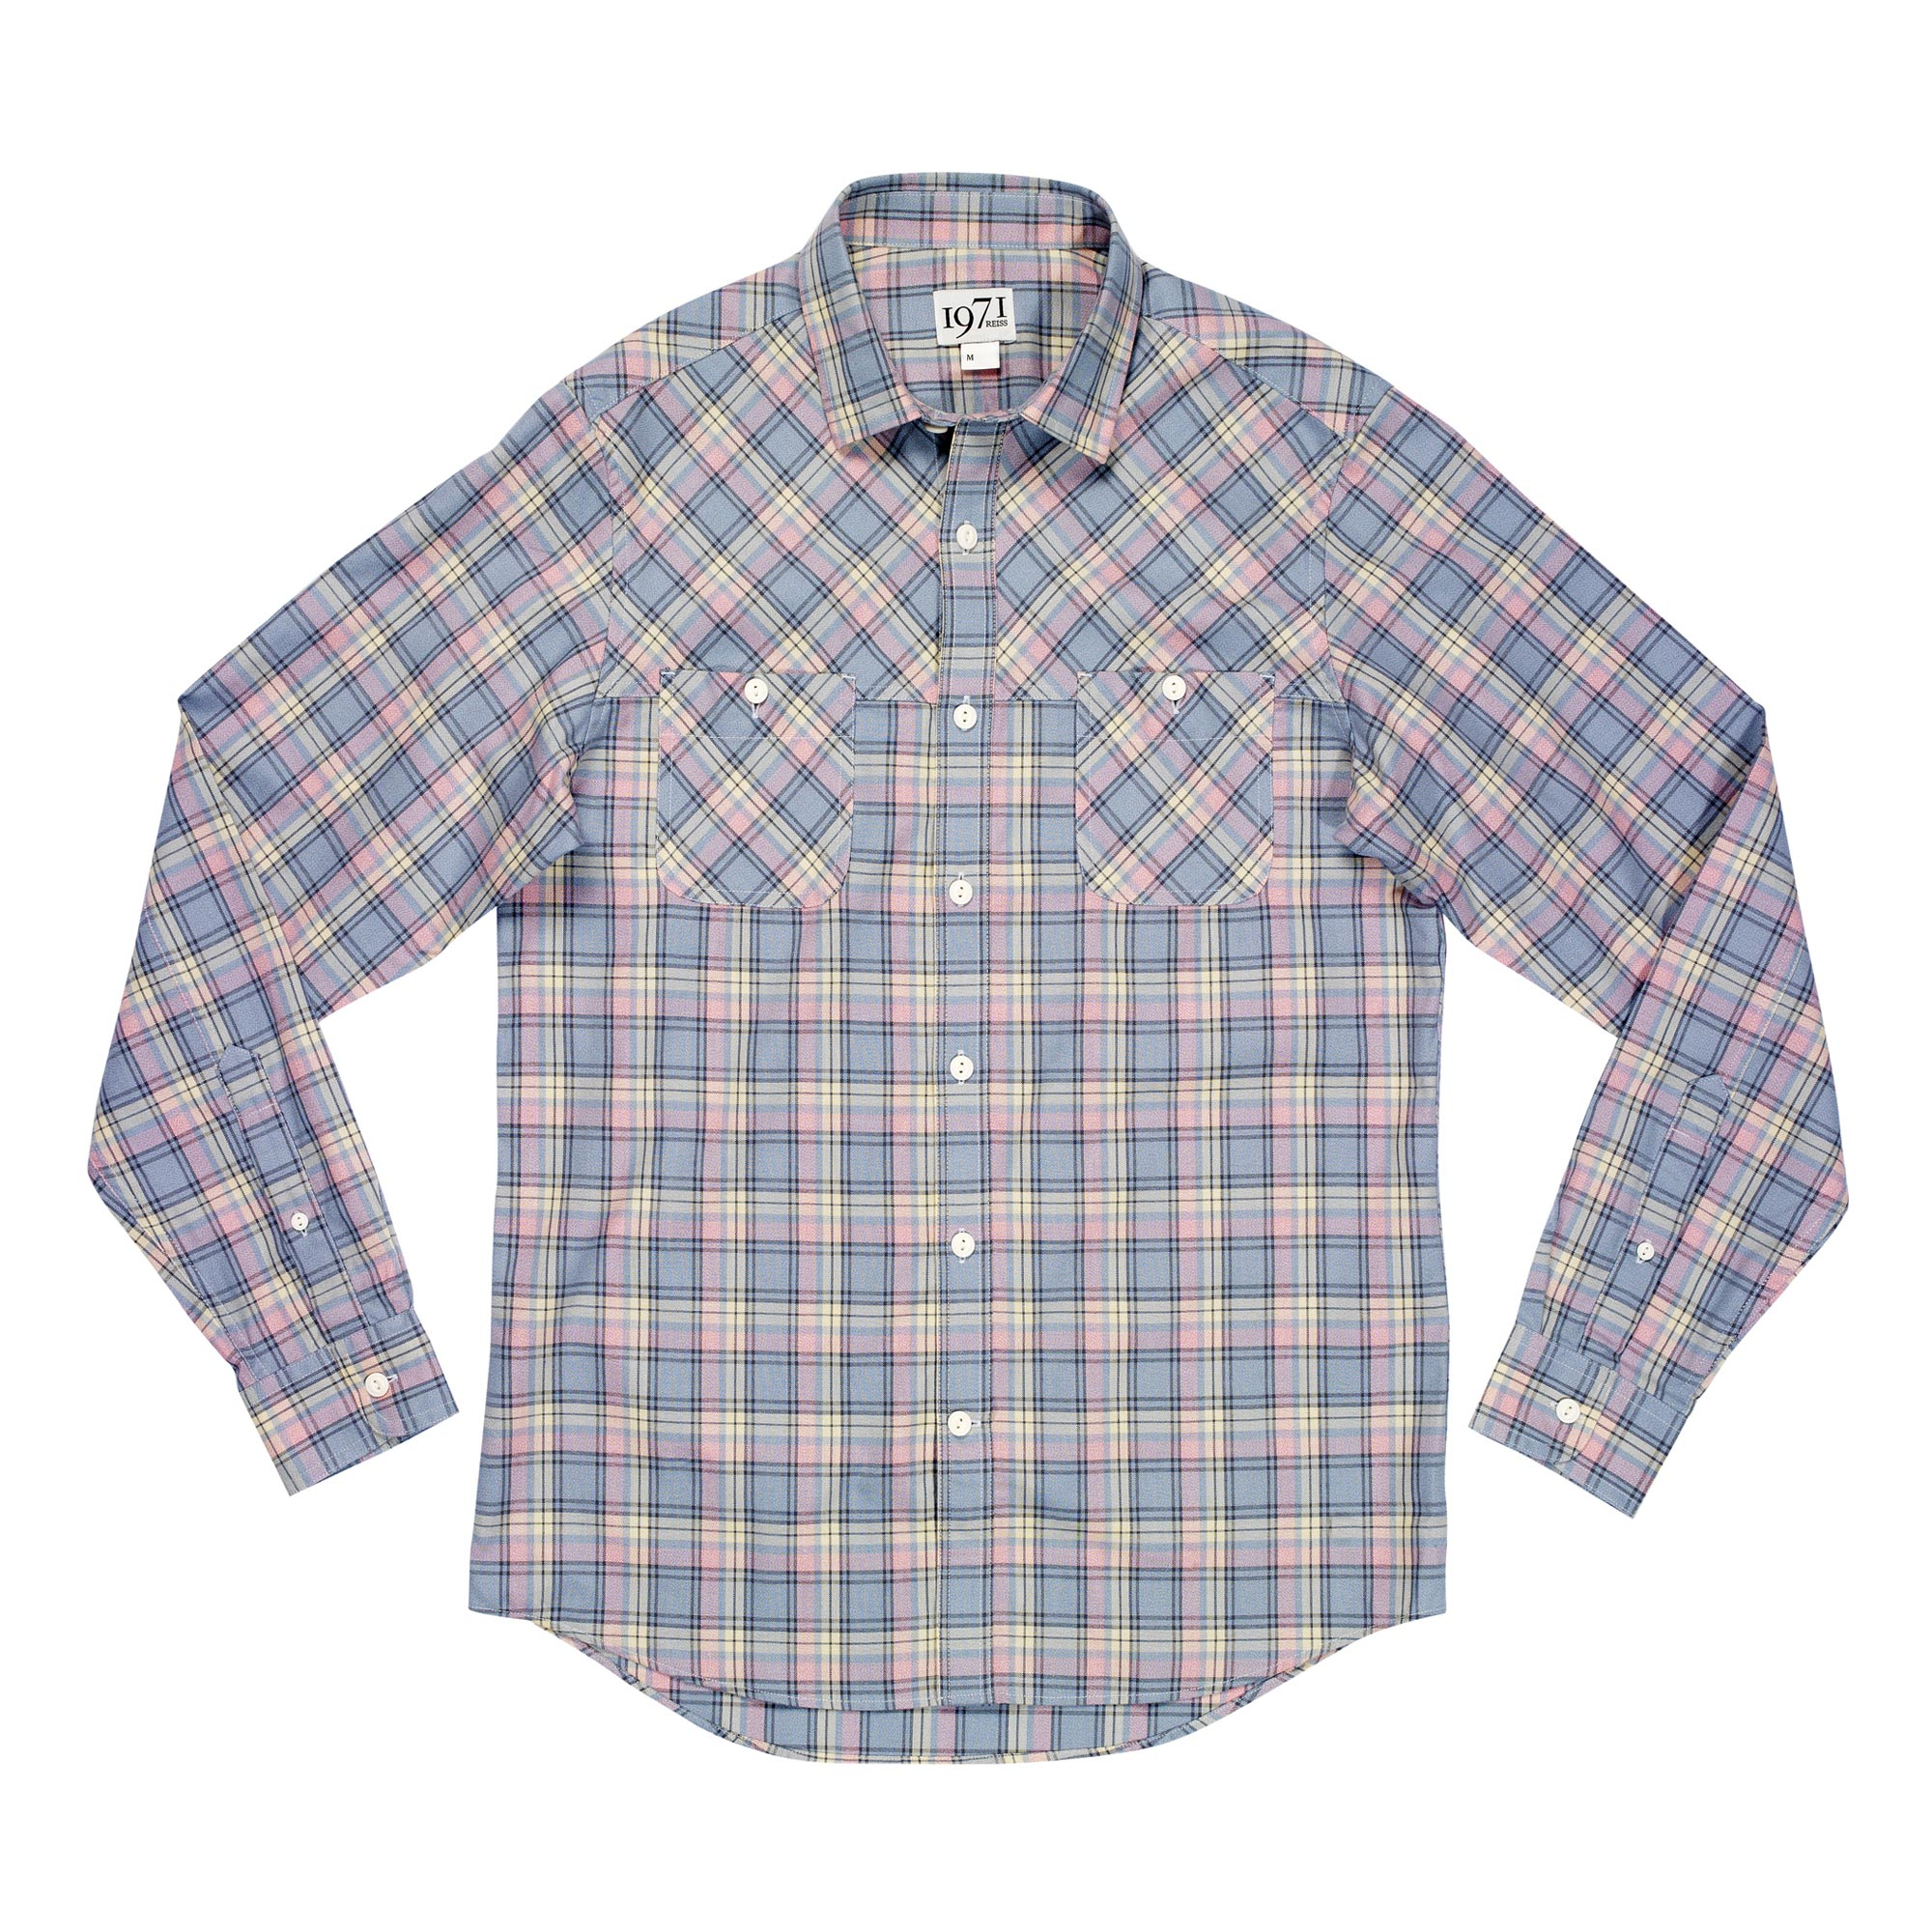 Reiss Check Shirt In Pink For Men Pink Check Lyst